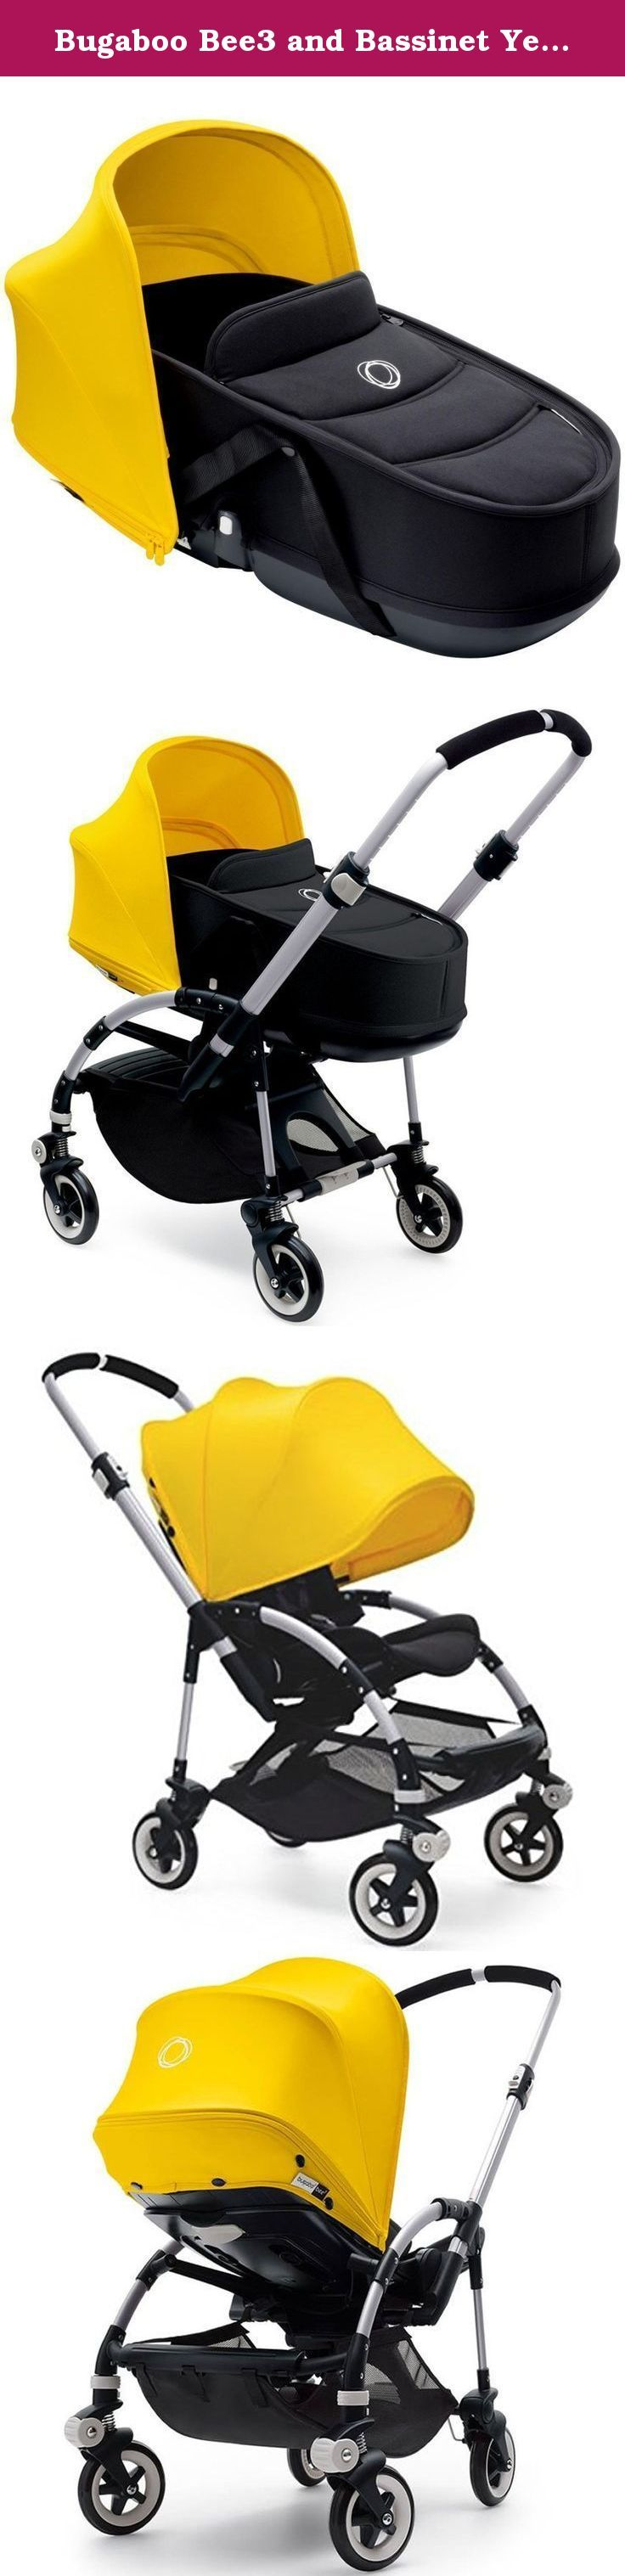 Bugaboo Bee3 and Bassinet Yellow/Black Travel System + Bugaboo Cup Holder. Travel System composed by Stroller and Bassinet. Plus Bugaboo Cup Holder.